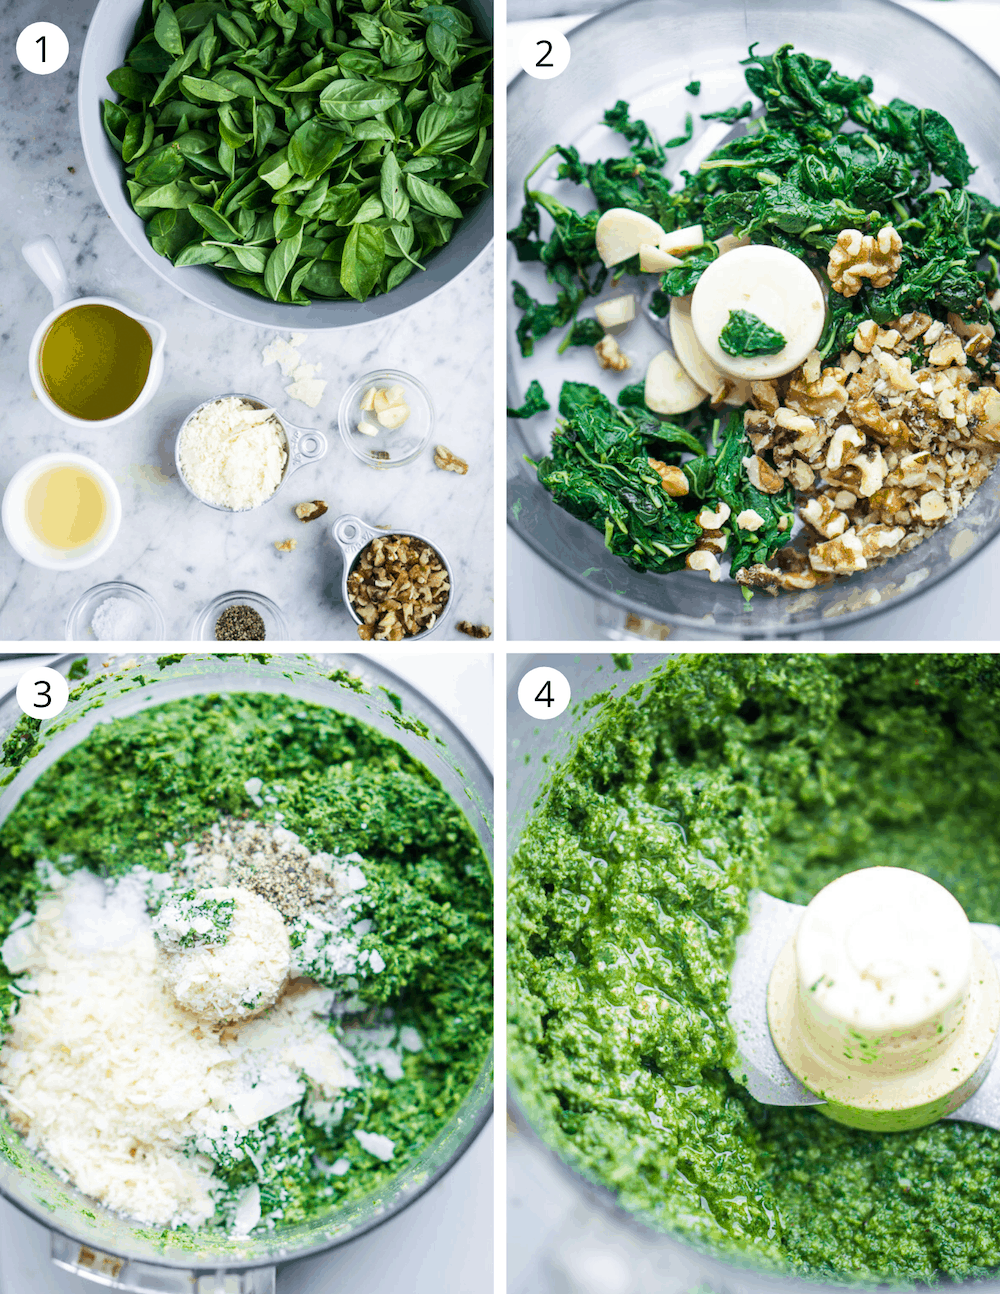 Step by step process of making basil pesto in a food processor